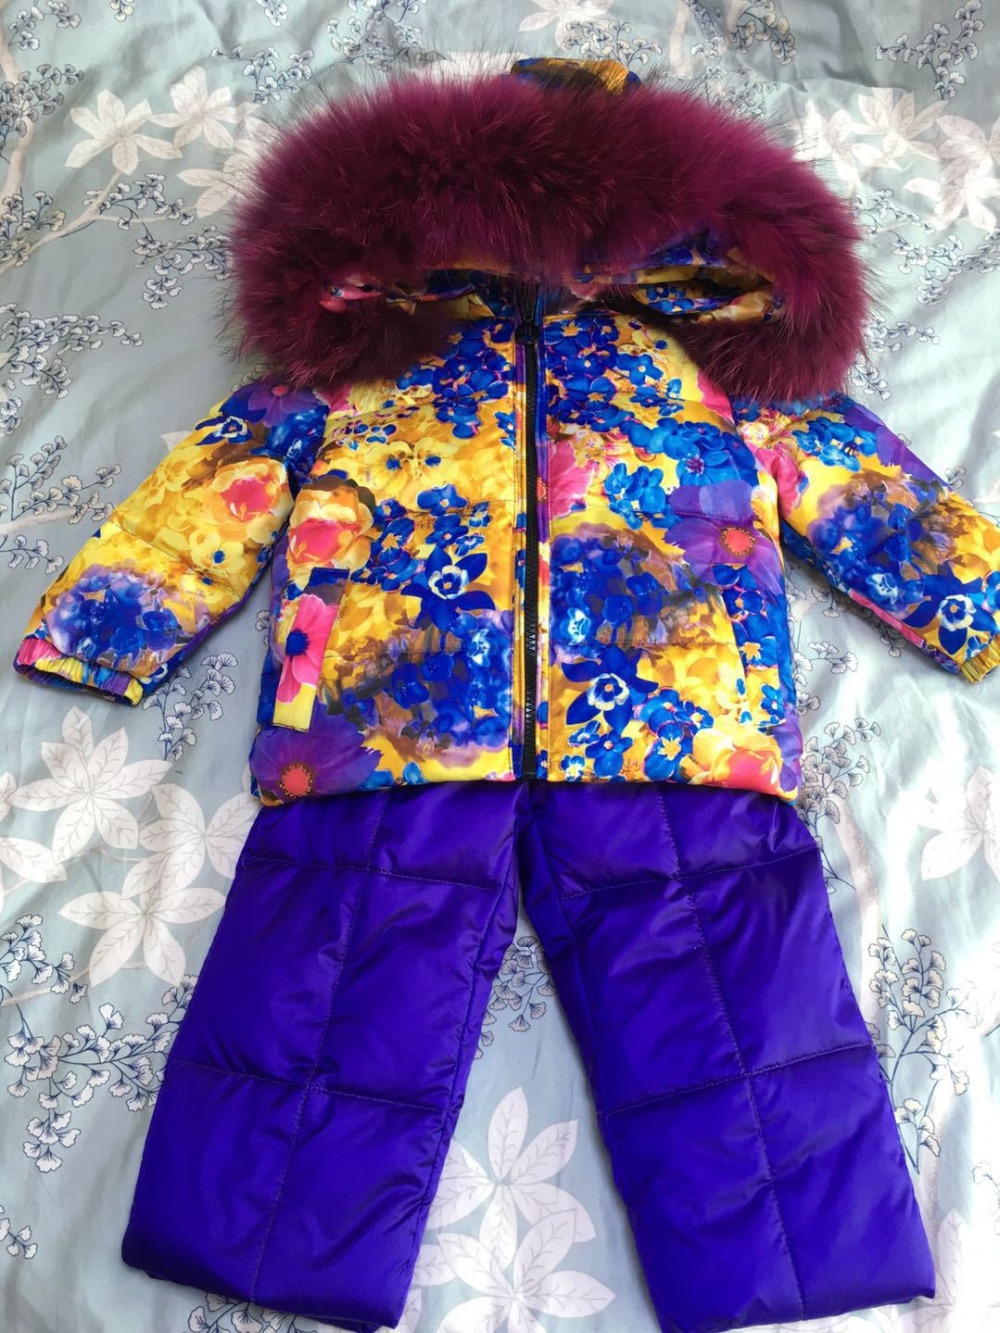 2018 Winter Baby Girls Down Jackets Kids Snowsuit Children Clothing Sets Warm Baby Down Jackets Outerwear Coat+Pants Jumpsuit angela&alex winter baby girls clothes sets children down jackets kids snowsuit warm baby ski suit down outerwear coat pants